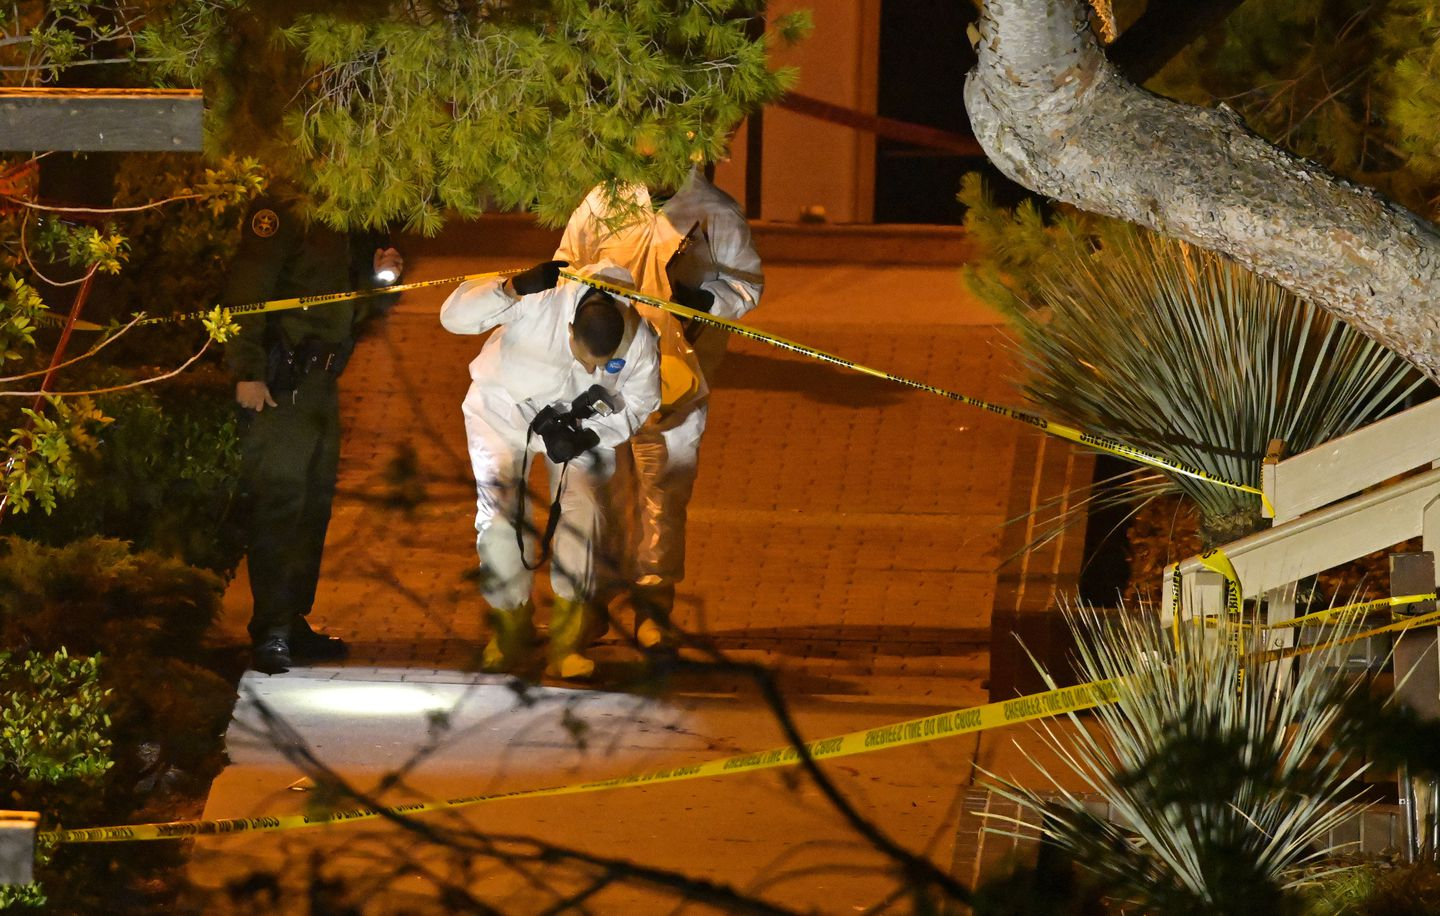 A forensics team worked the scene in Thousand Oaks, Calif. on Thursday.